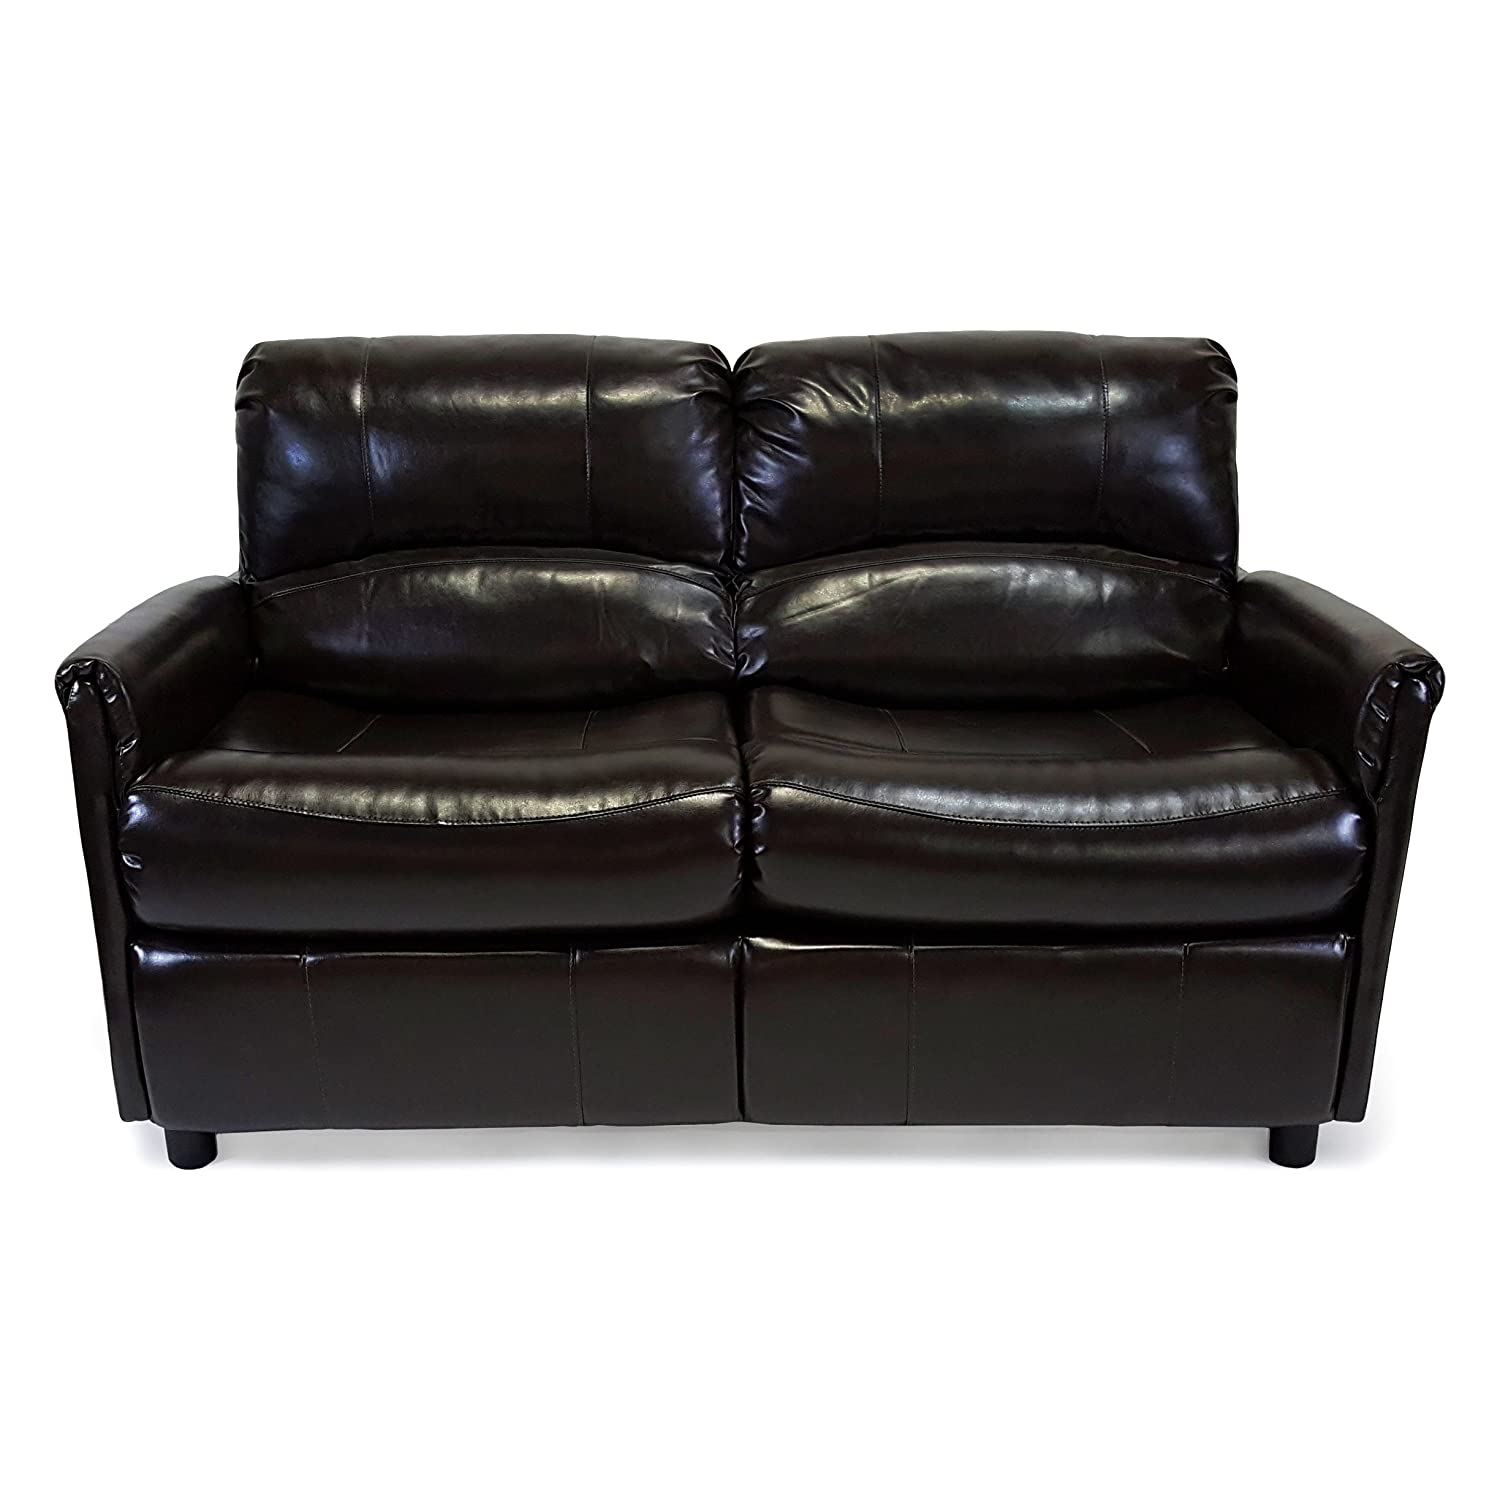 futon best huge a sofa en bed selection black bergen loveseat buy canada futons category beds hide transitional ca